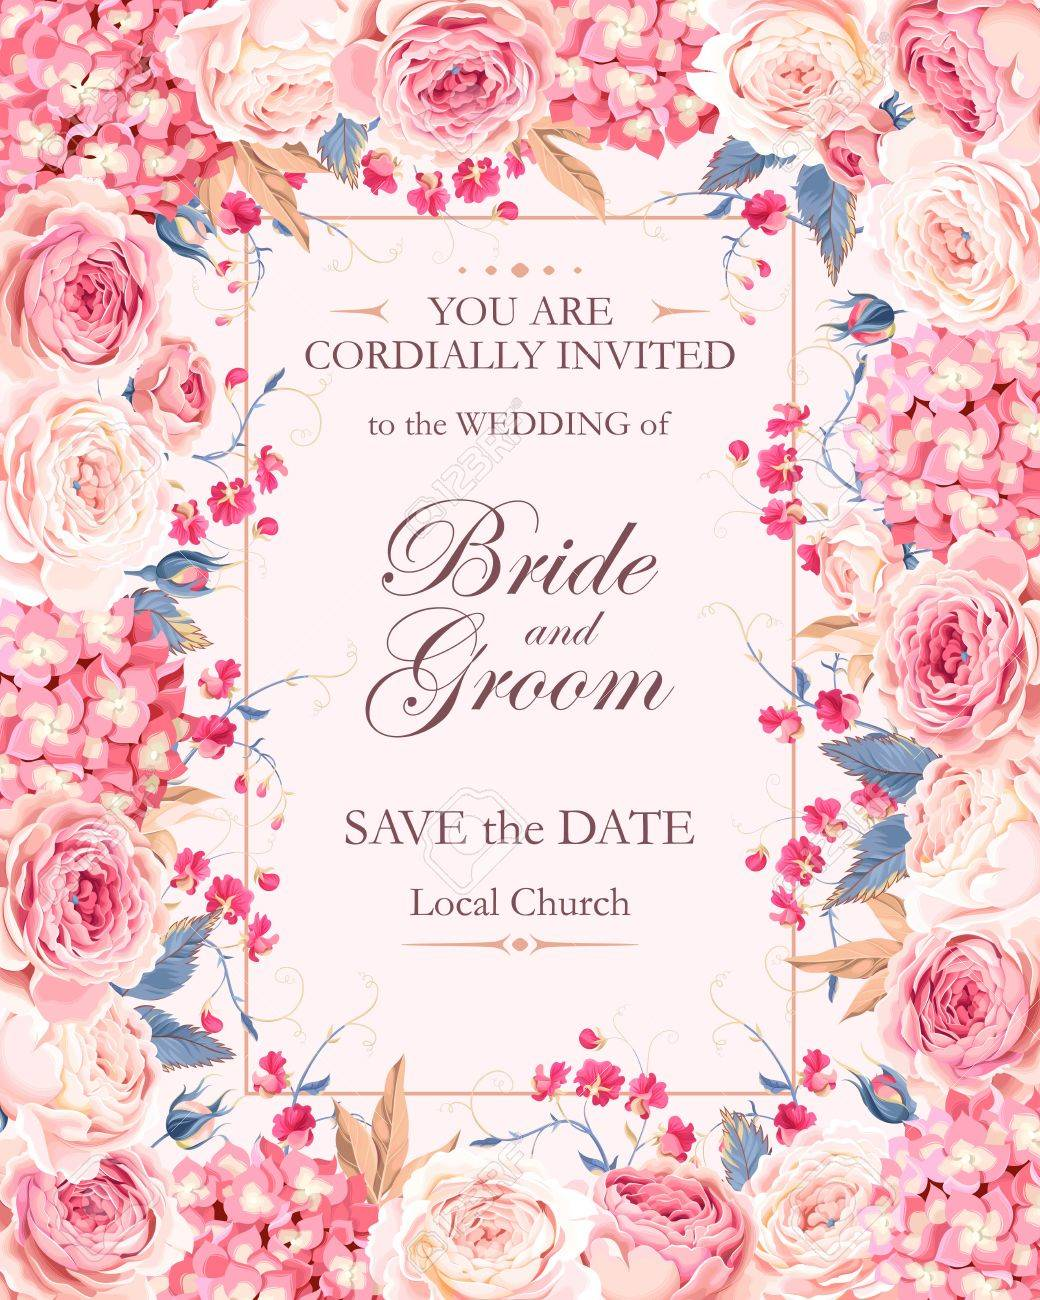 Vector vintage wedding invitation decorated with roses and hydrangea - 67378273